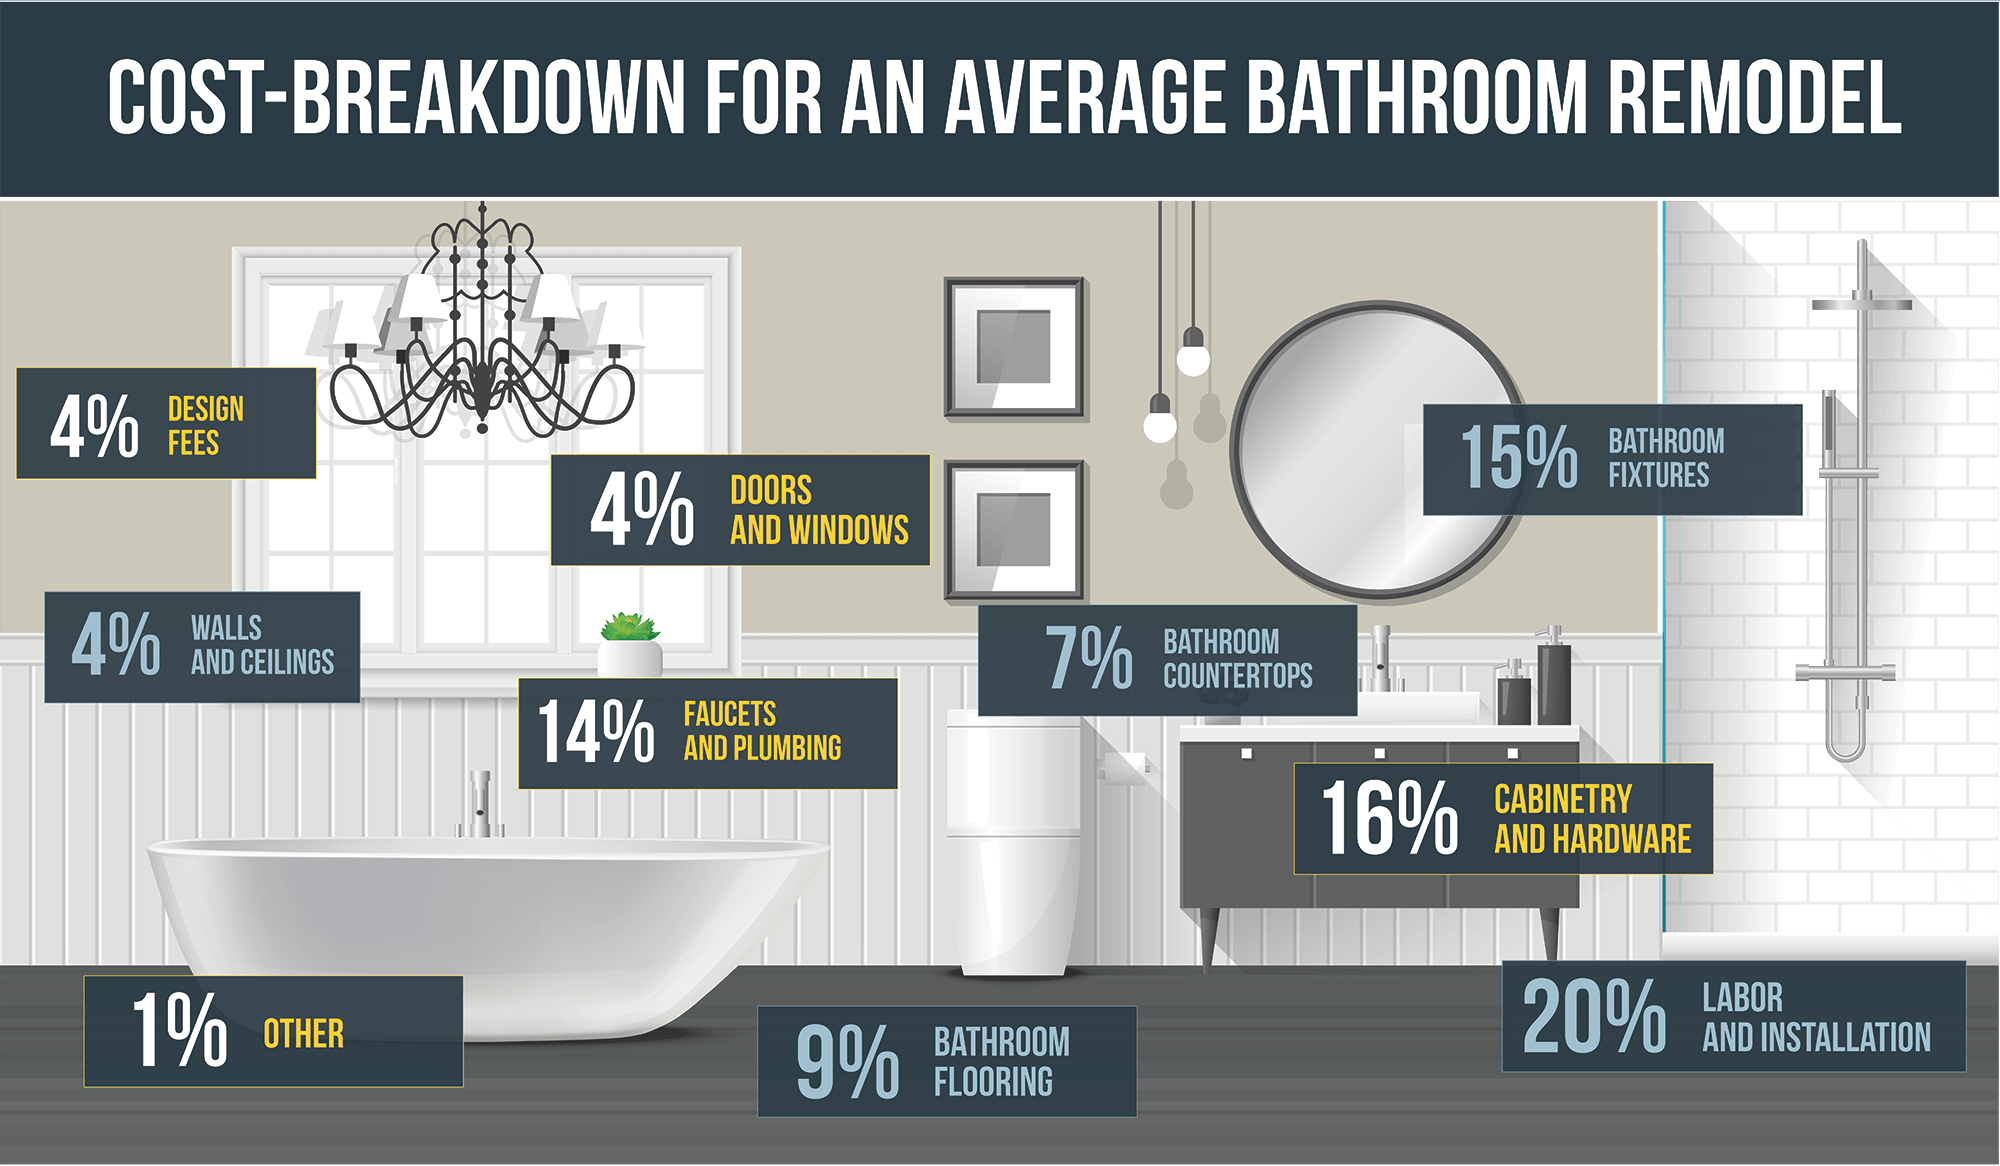 The ROI Of A Bathroom Remodel - Bathroom remodel cost breakdown